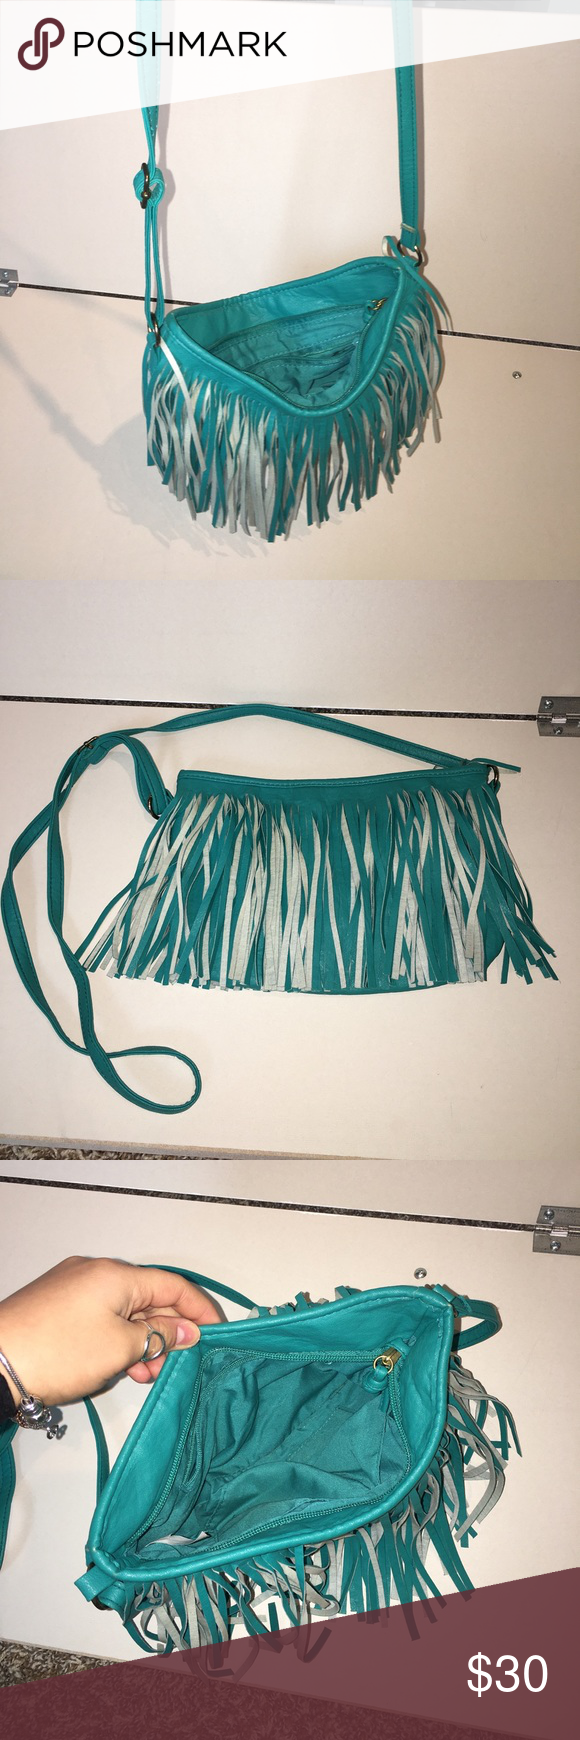 Boho teal shredded purse Teal shredded purse with cross body adjustable strap, bought from boutique Bags Shoulder Bags